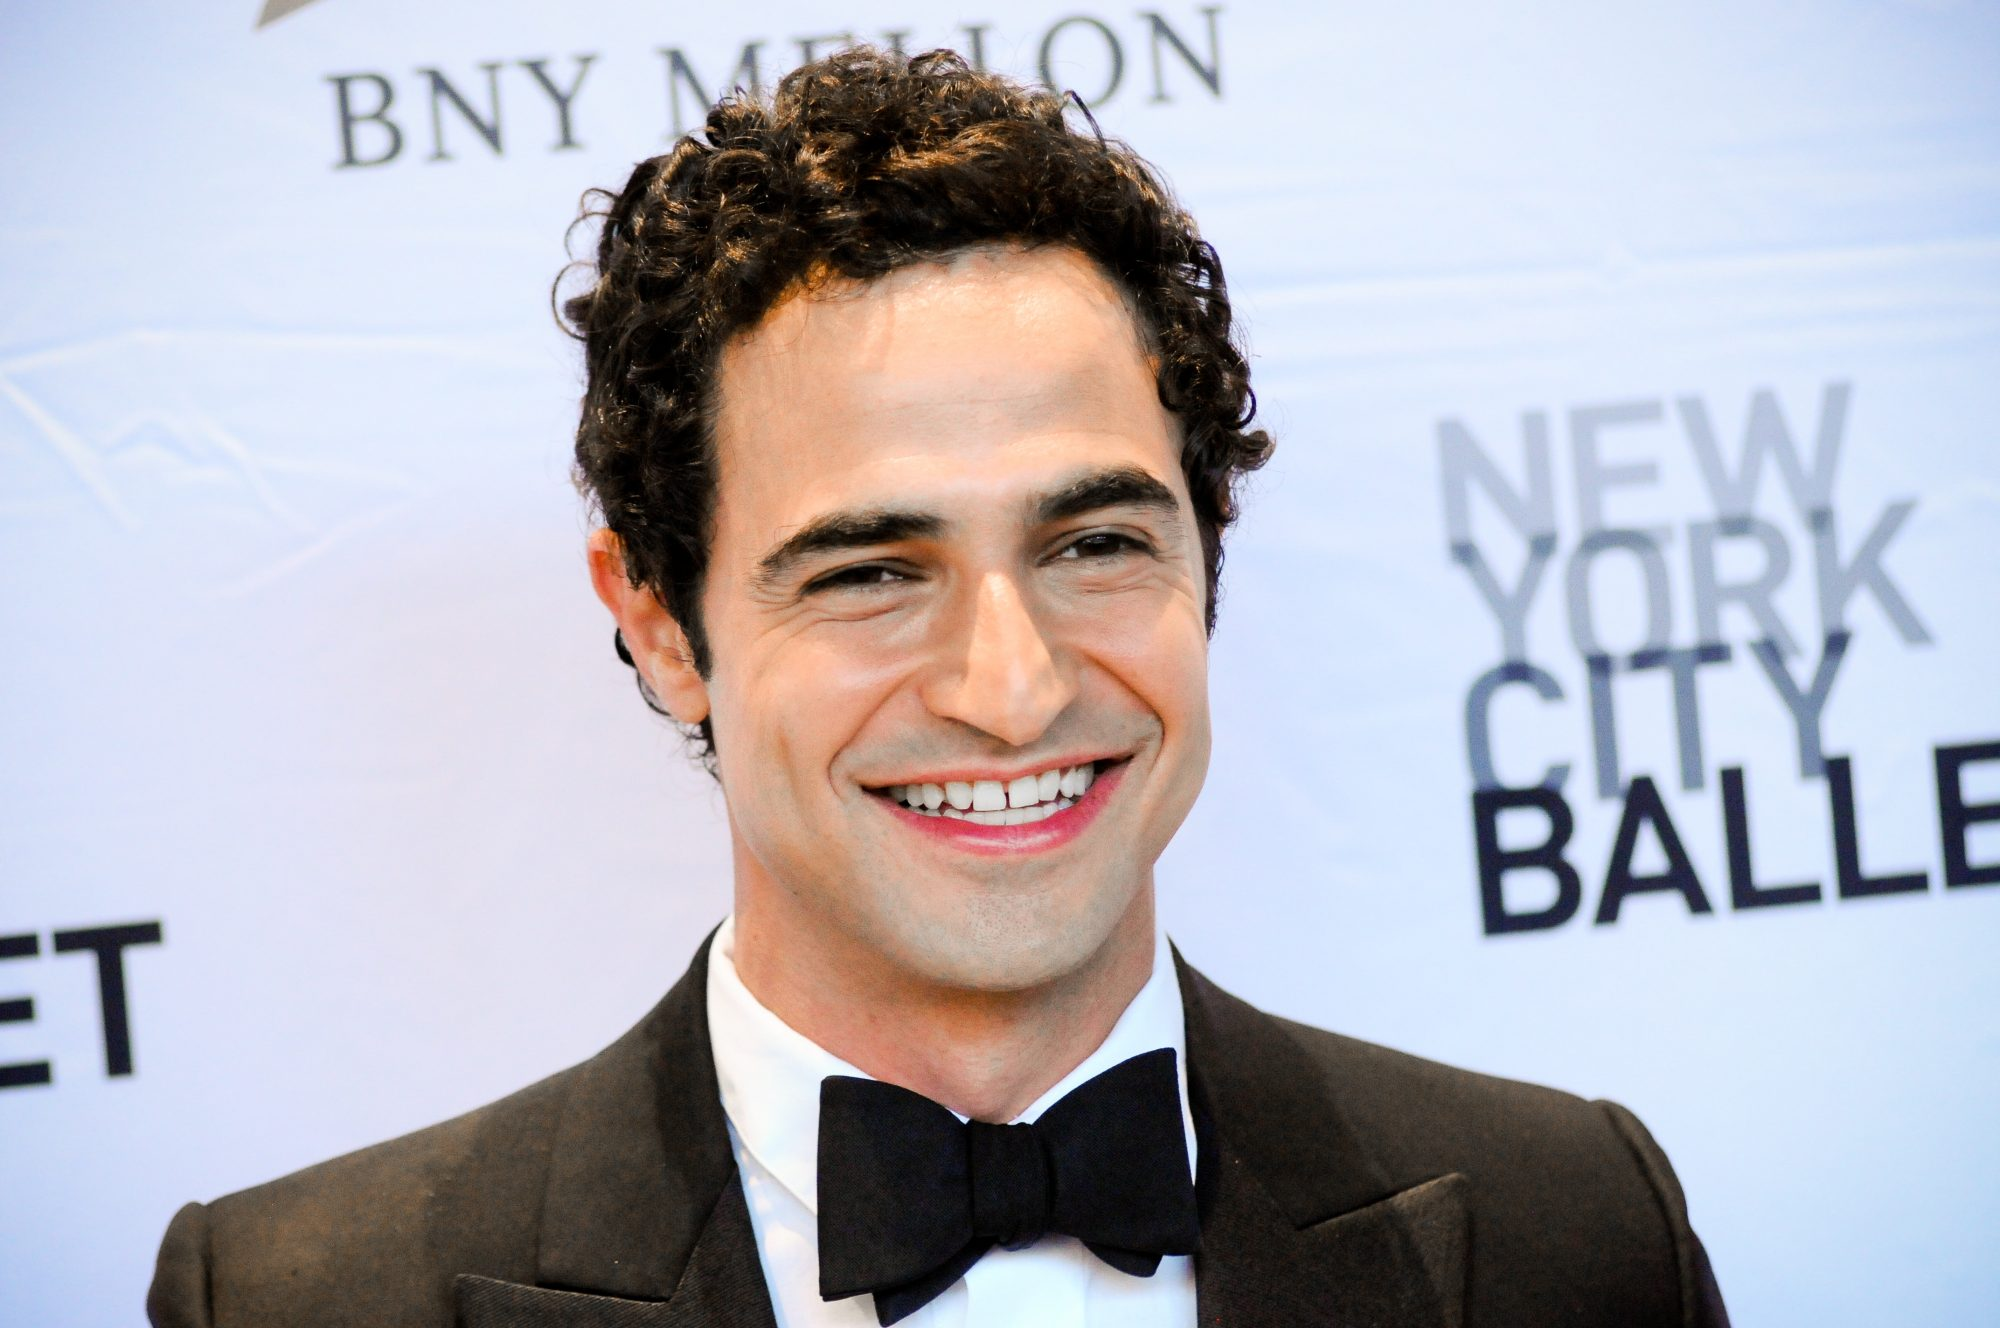 Zac Posen attends the NYC Ballet Fall Fashion Gala